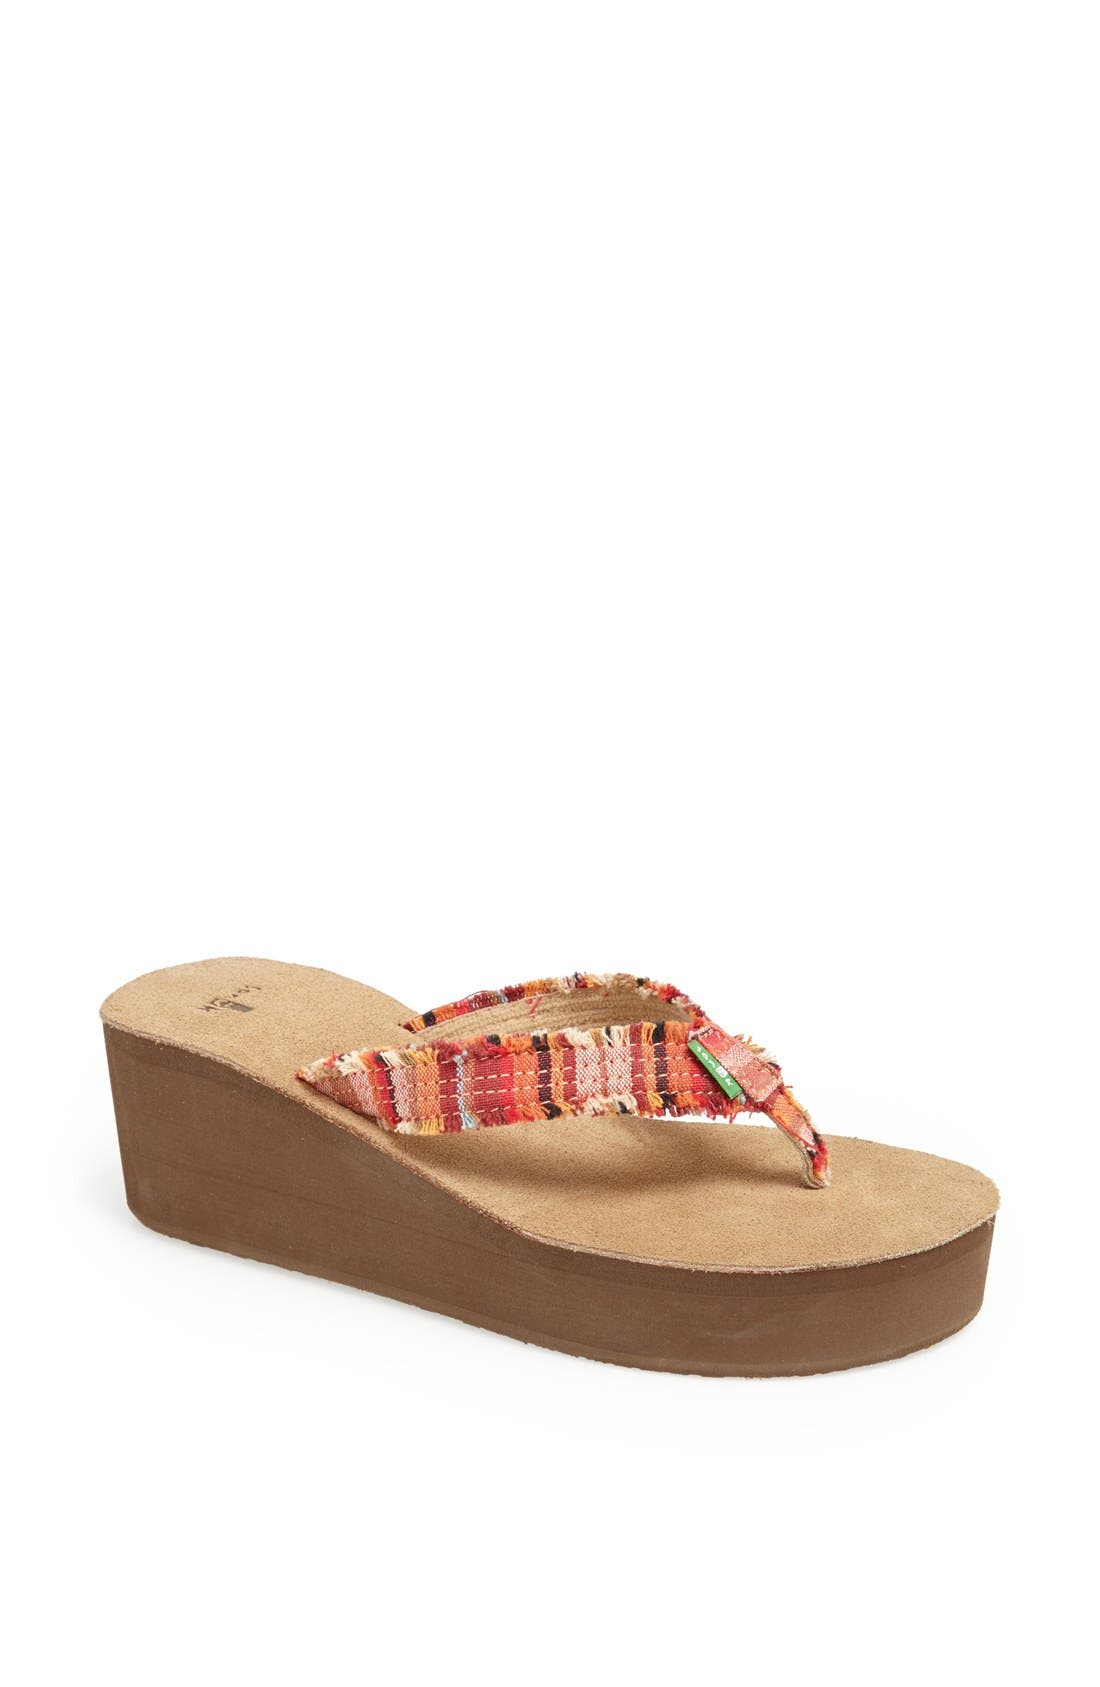 Alternate Image 1 Selected - Sanuk 'Fraidy Cat' Wedge Flip Flop